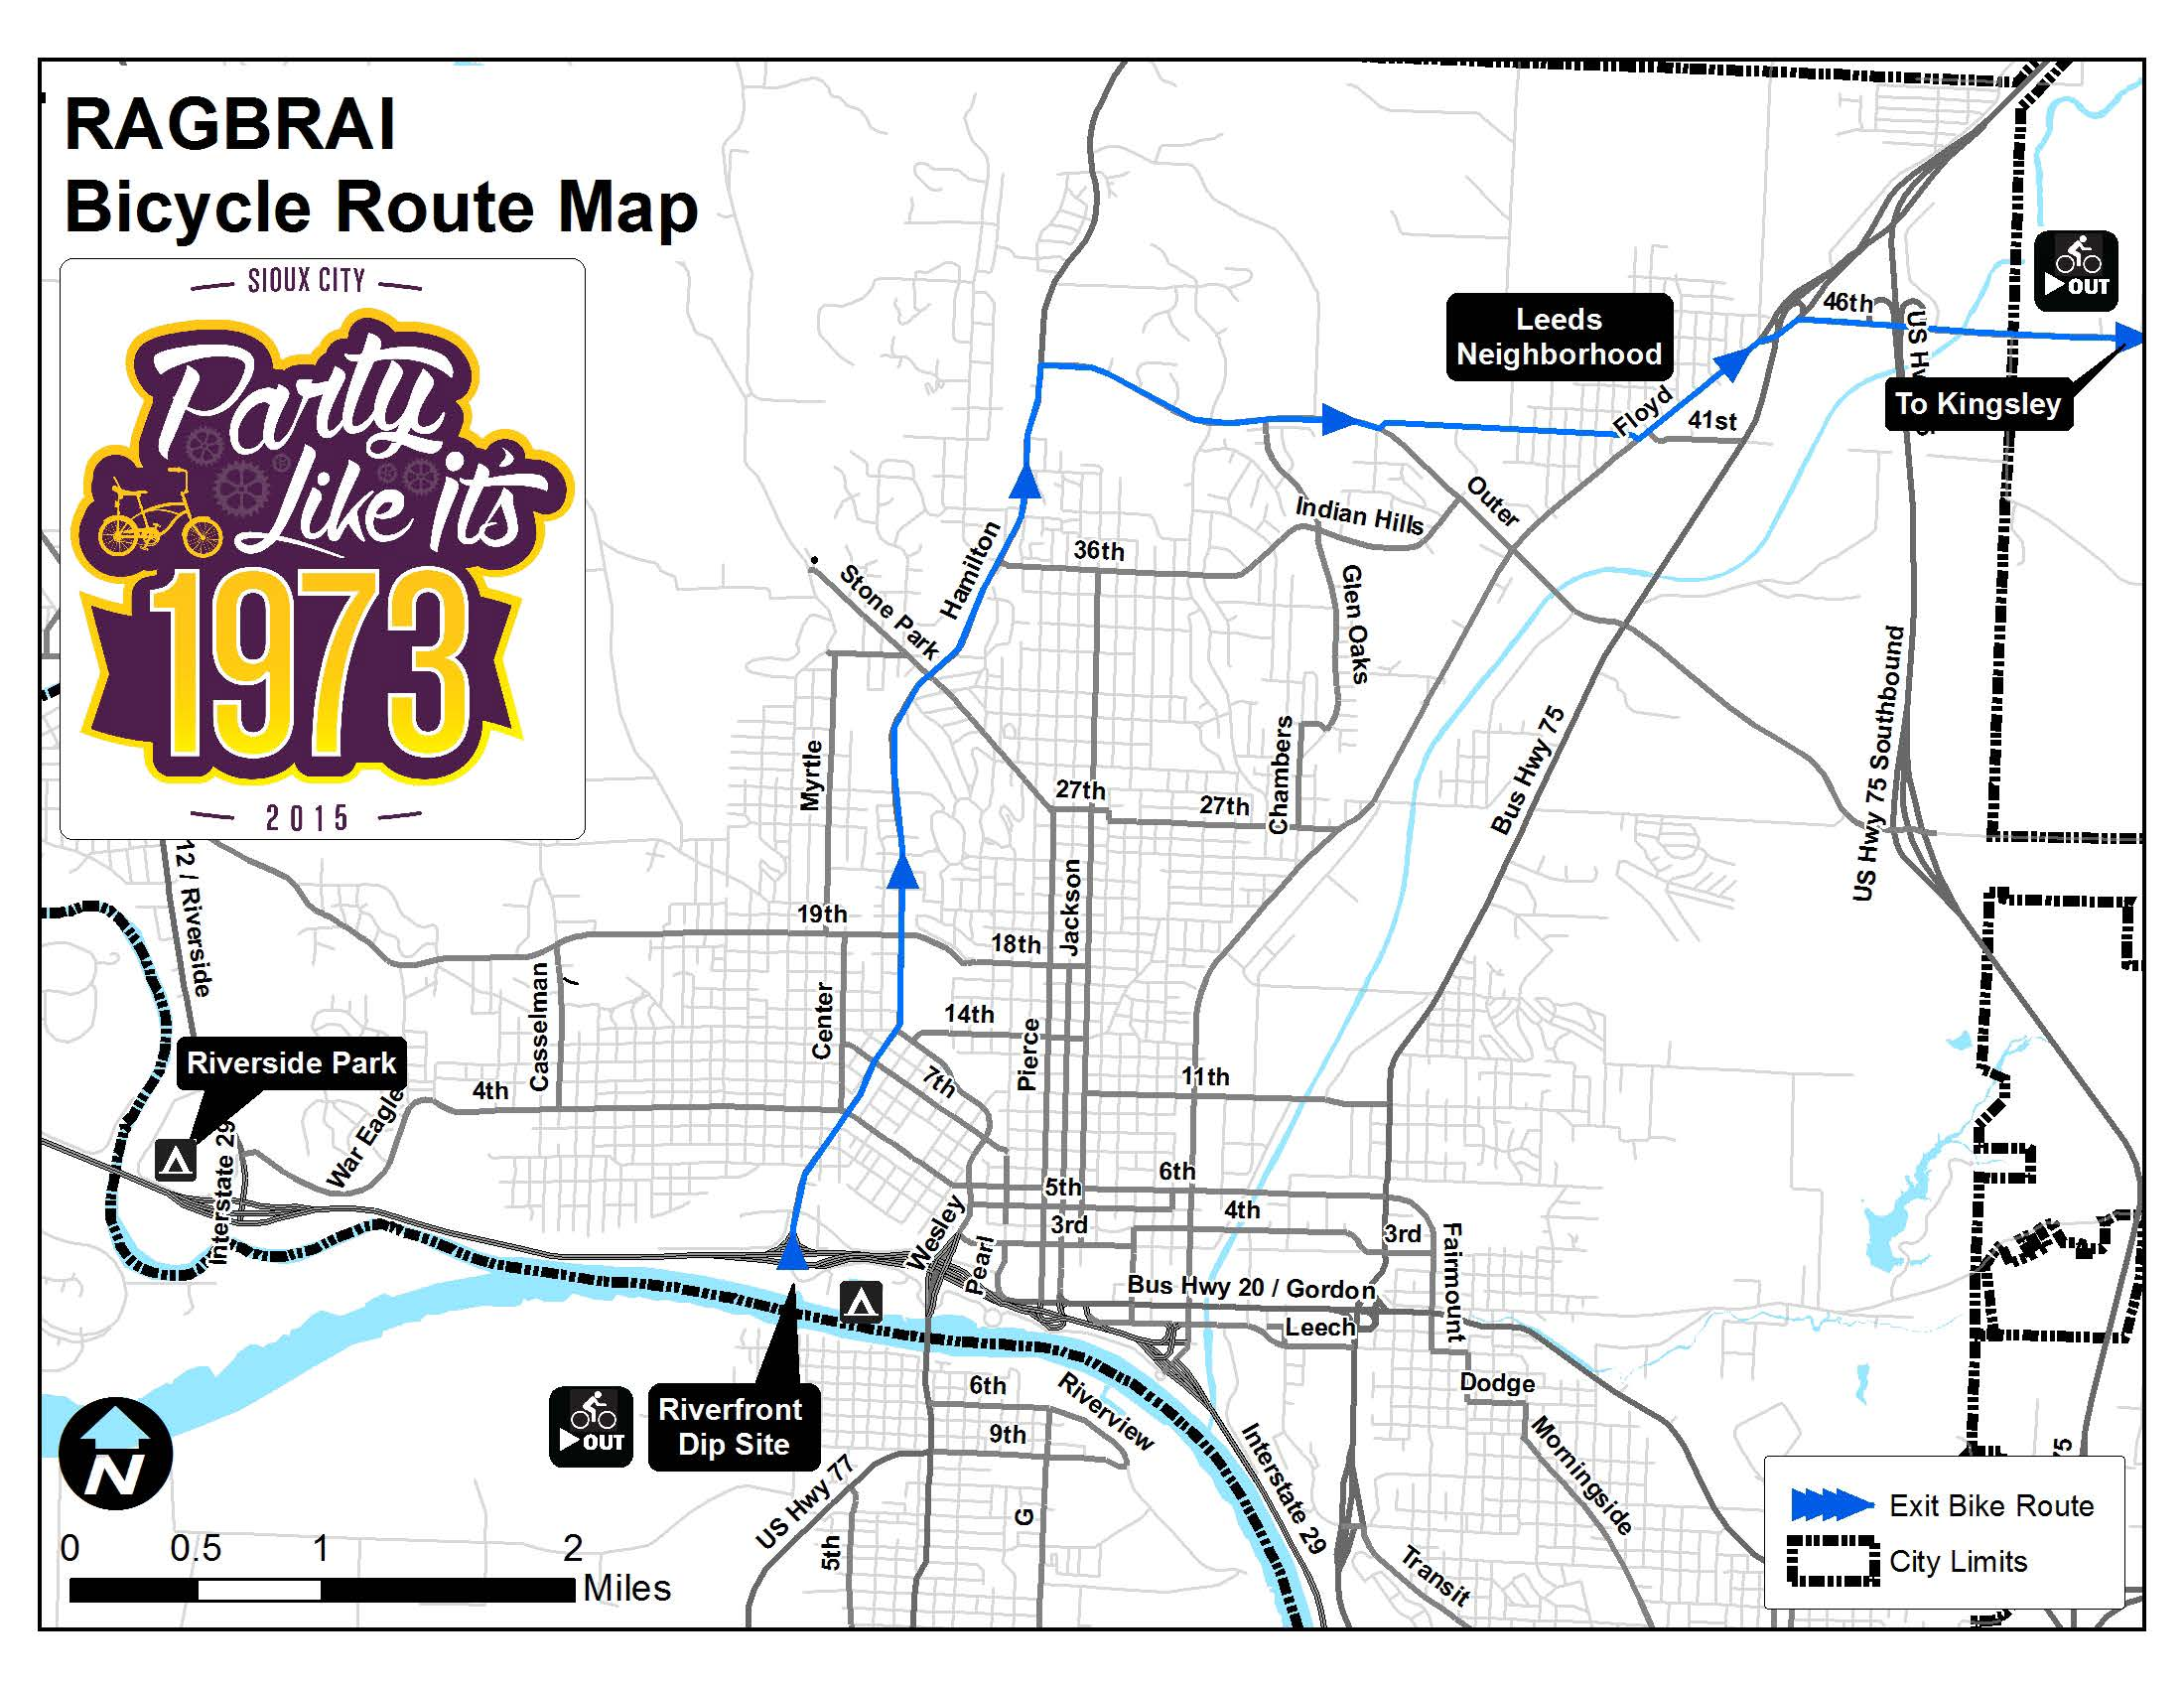 ragbrai riders to travel hamilton to outer drive, then east to leeds